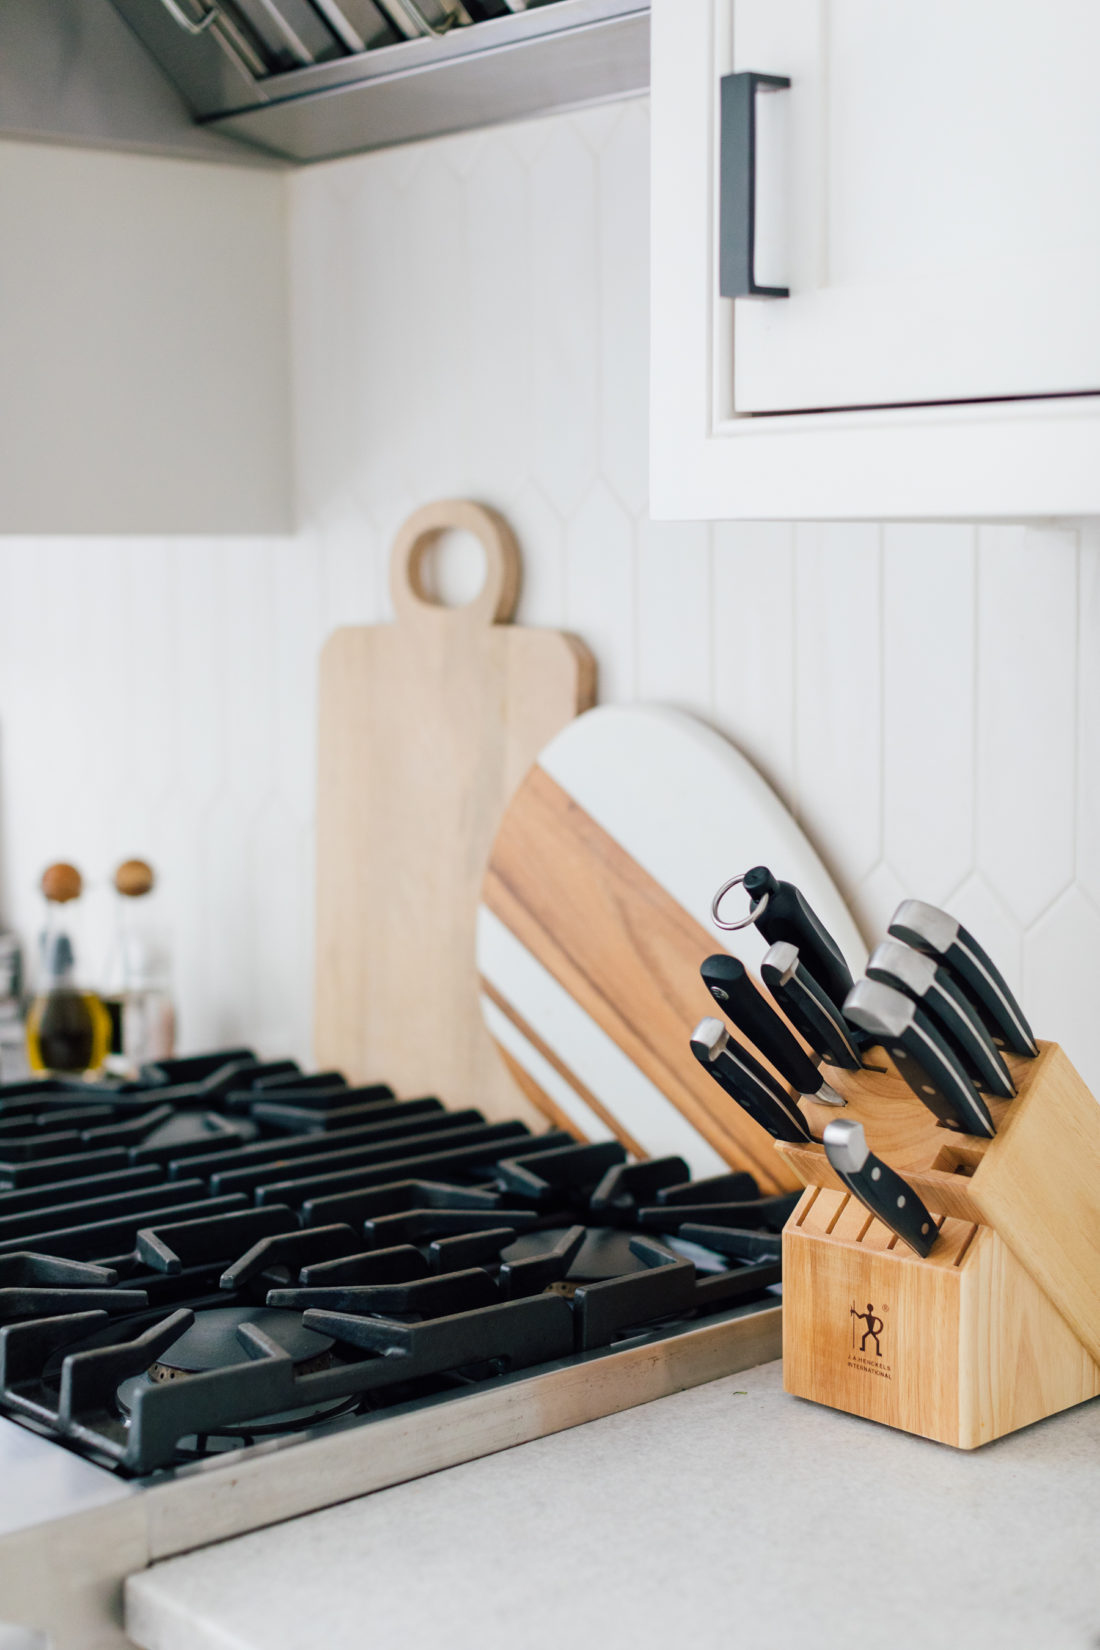 Eva Amurri Martino shares a close up shot of the backsplash and stovetop in her renovated Connecticut kitchen